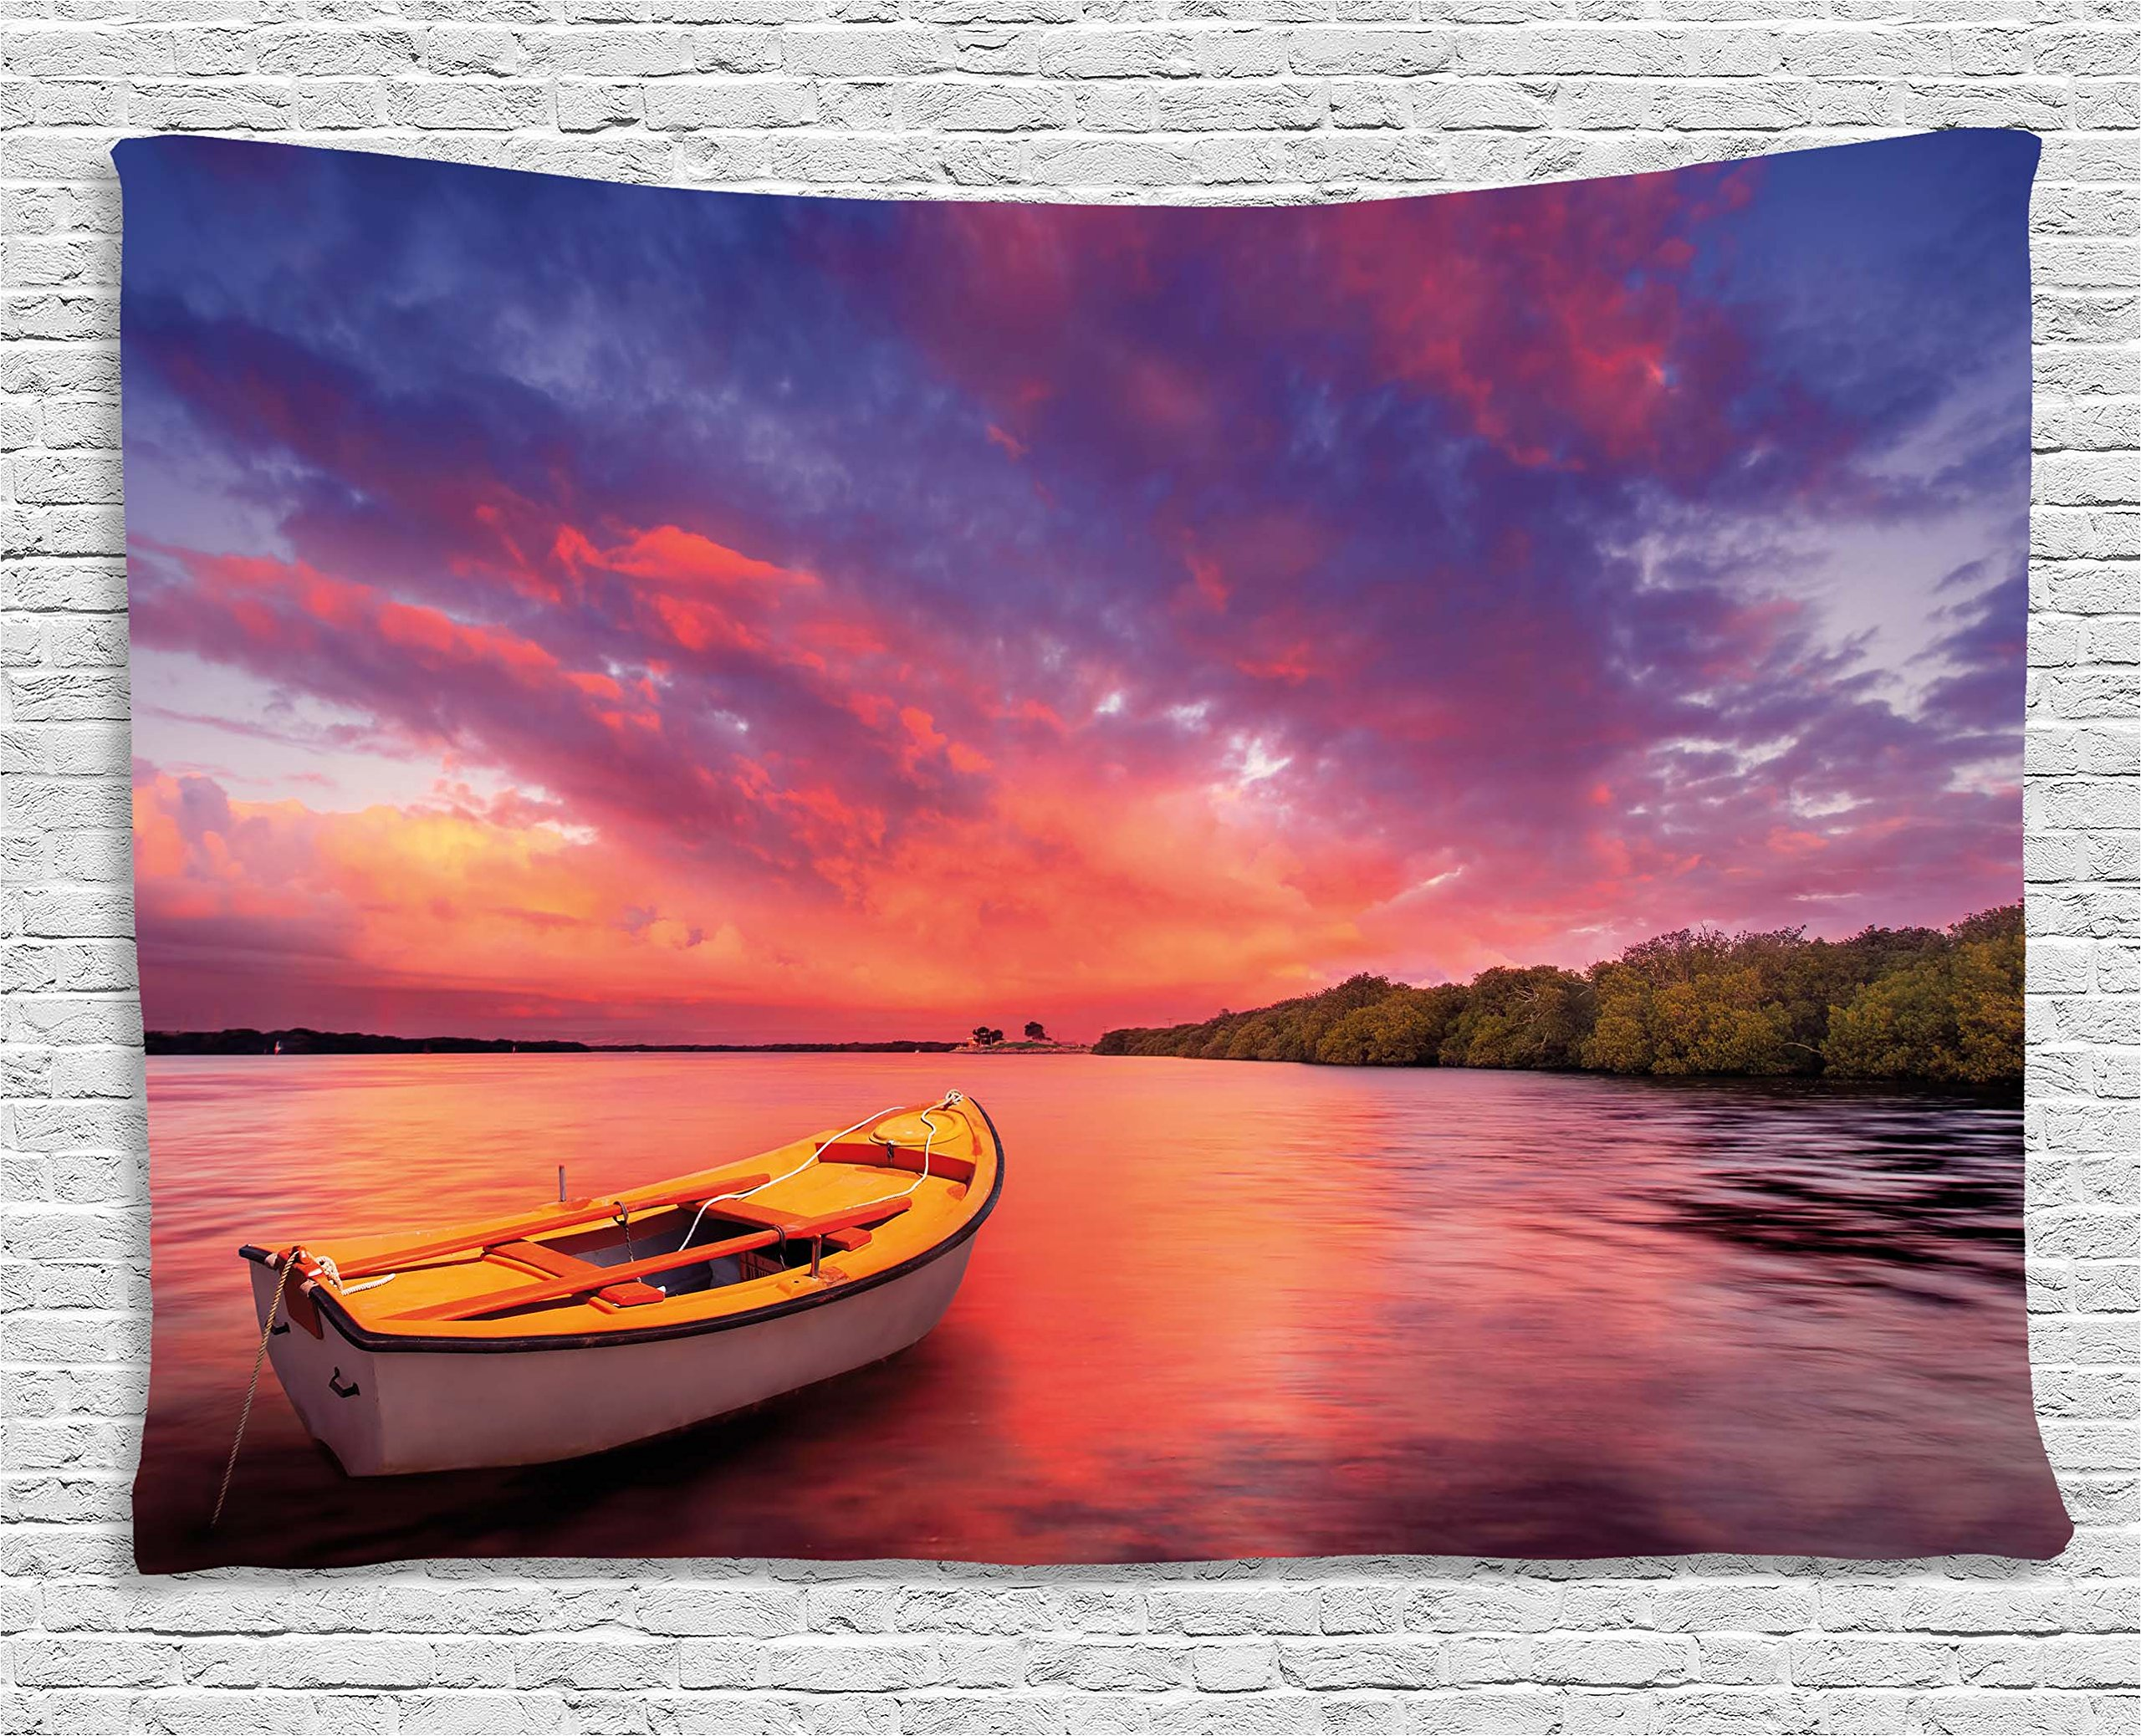 Ambesonne Sunset Tapestry, Enchanted Coast with a Rowboat Under Hazy Sky Peaceful Nature Image, Wide Wall Hanging for Bedroom Living Room Dorm, 80'' X 60'', Purple Pink by Ambesonne